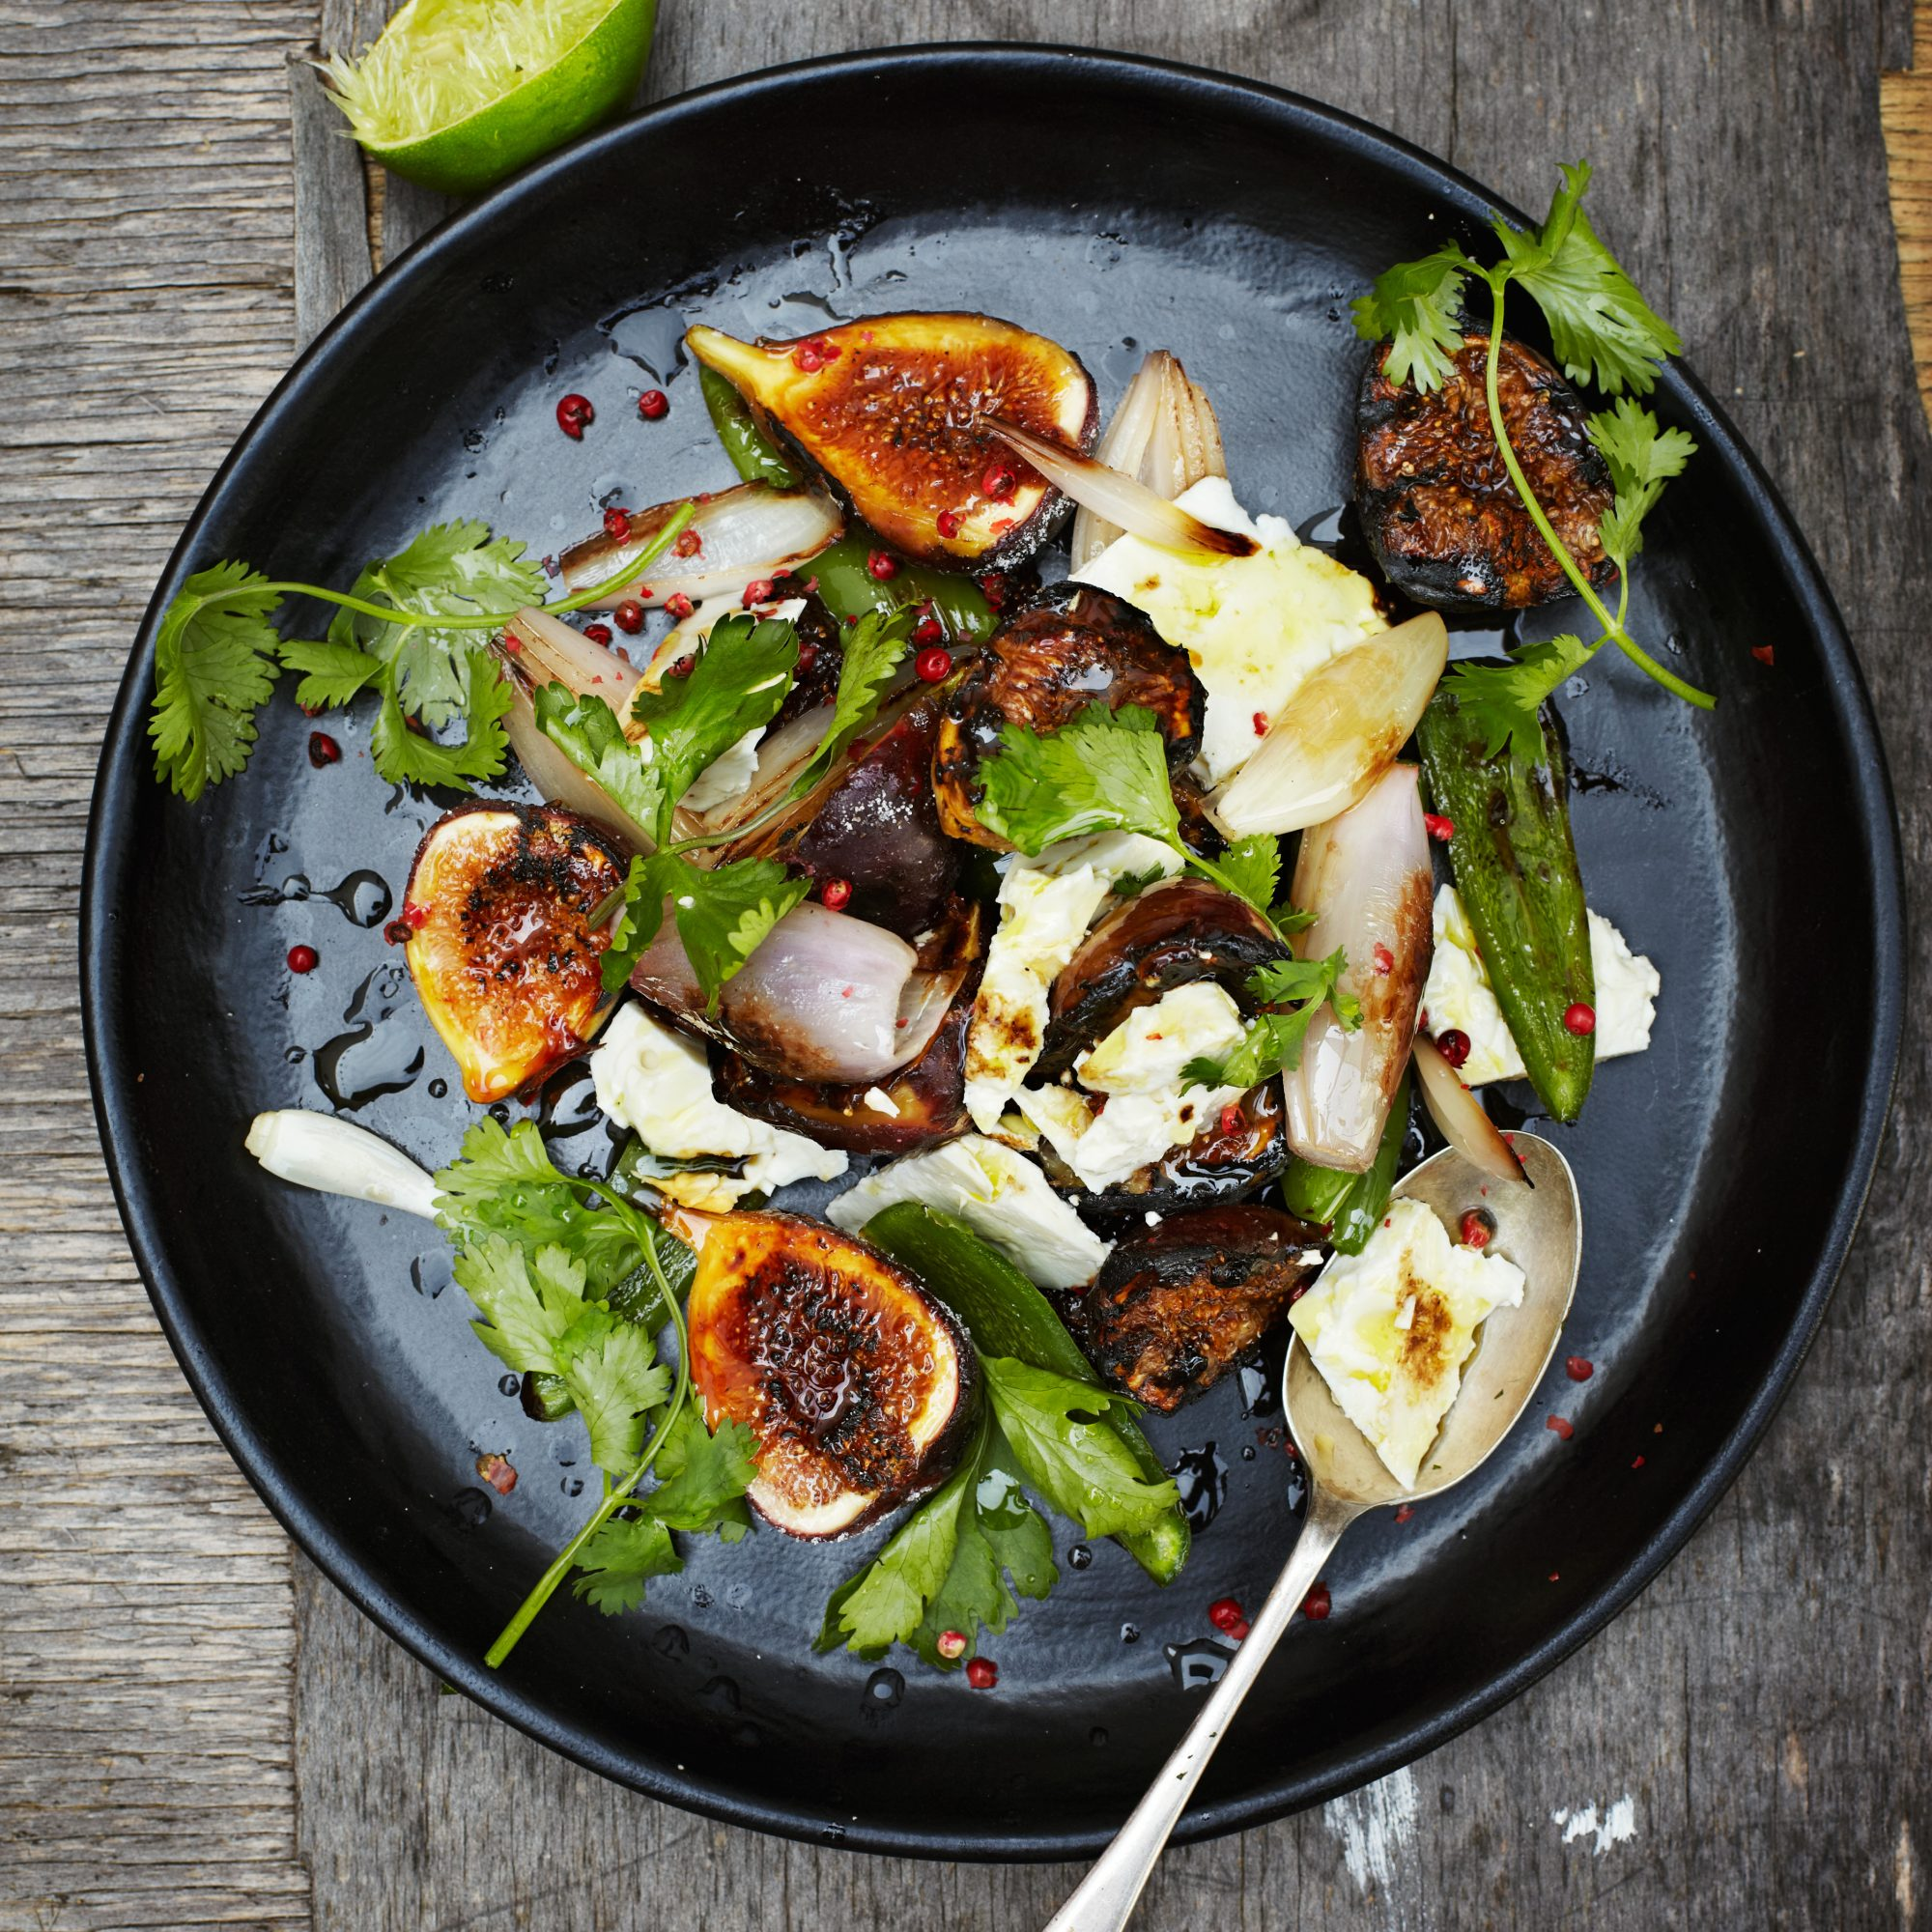 original-201306-r-fresh-fig-salad-with-feta-and-blistered-jalapenos.jpg